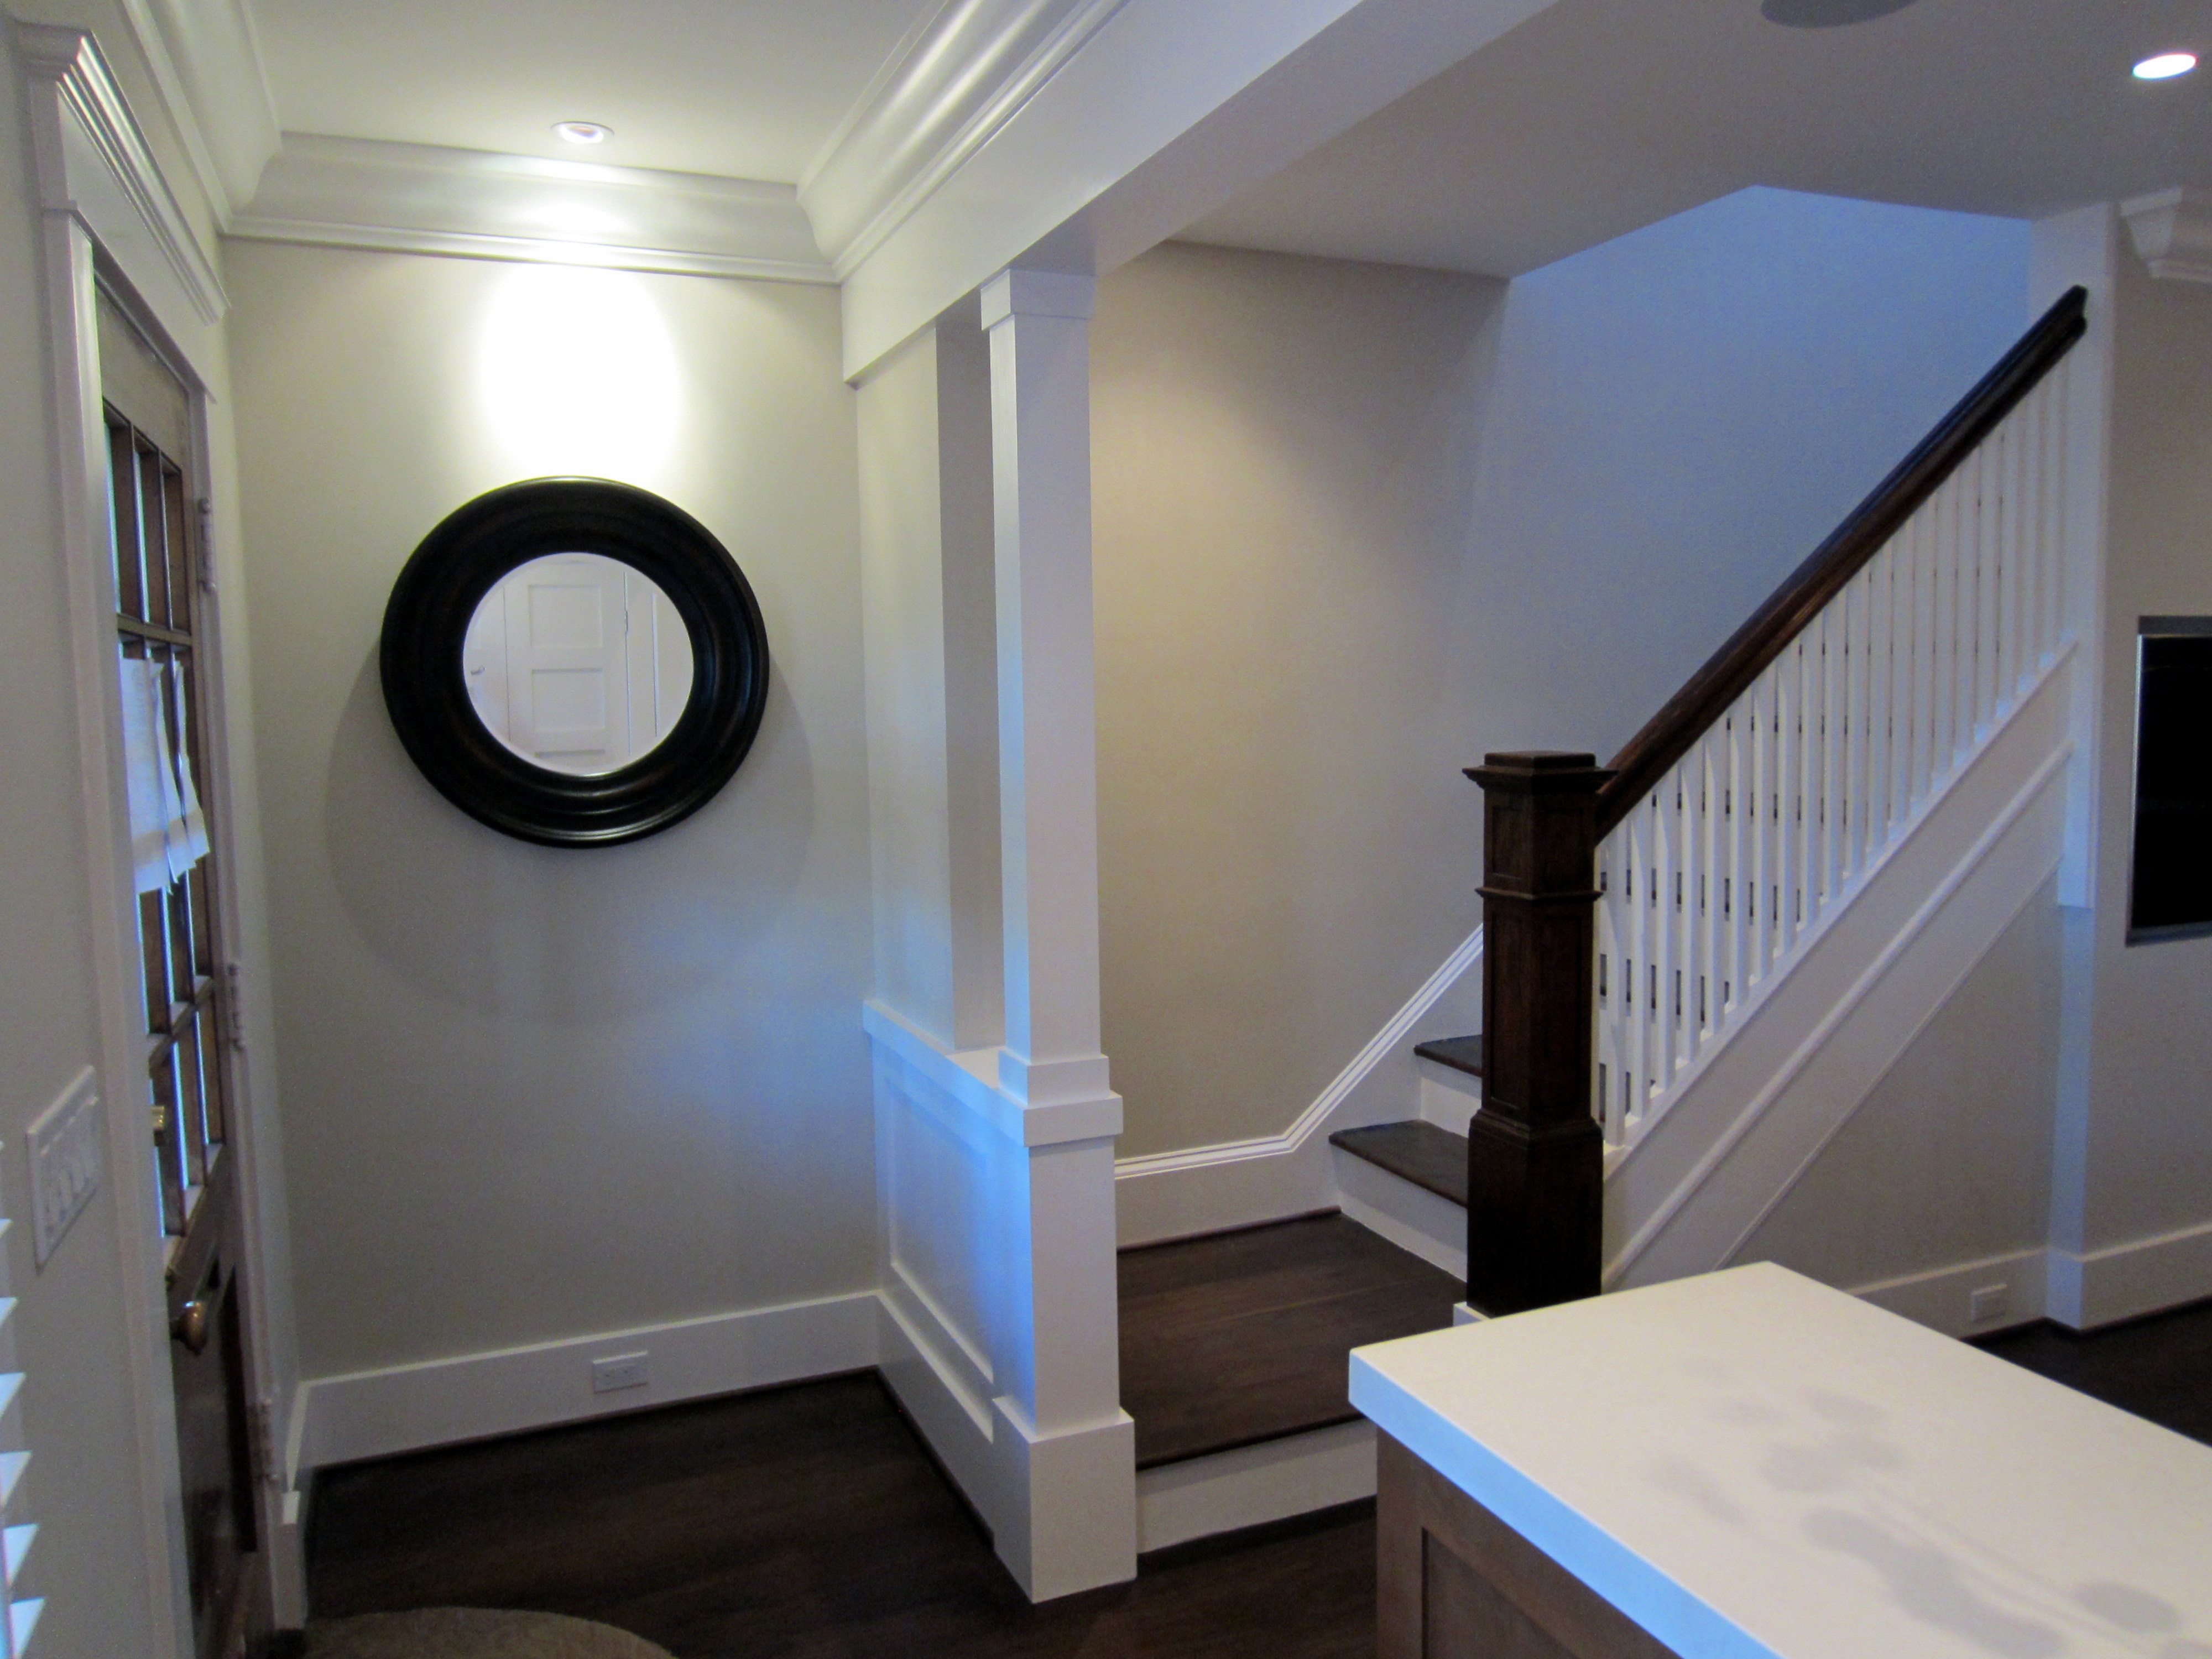 Basement Stairs With Landing. Best A With Basement Stairs With Landing